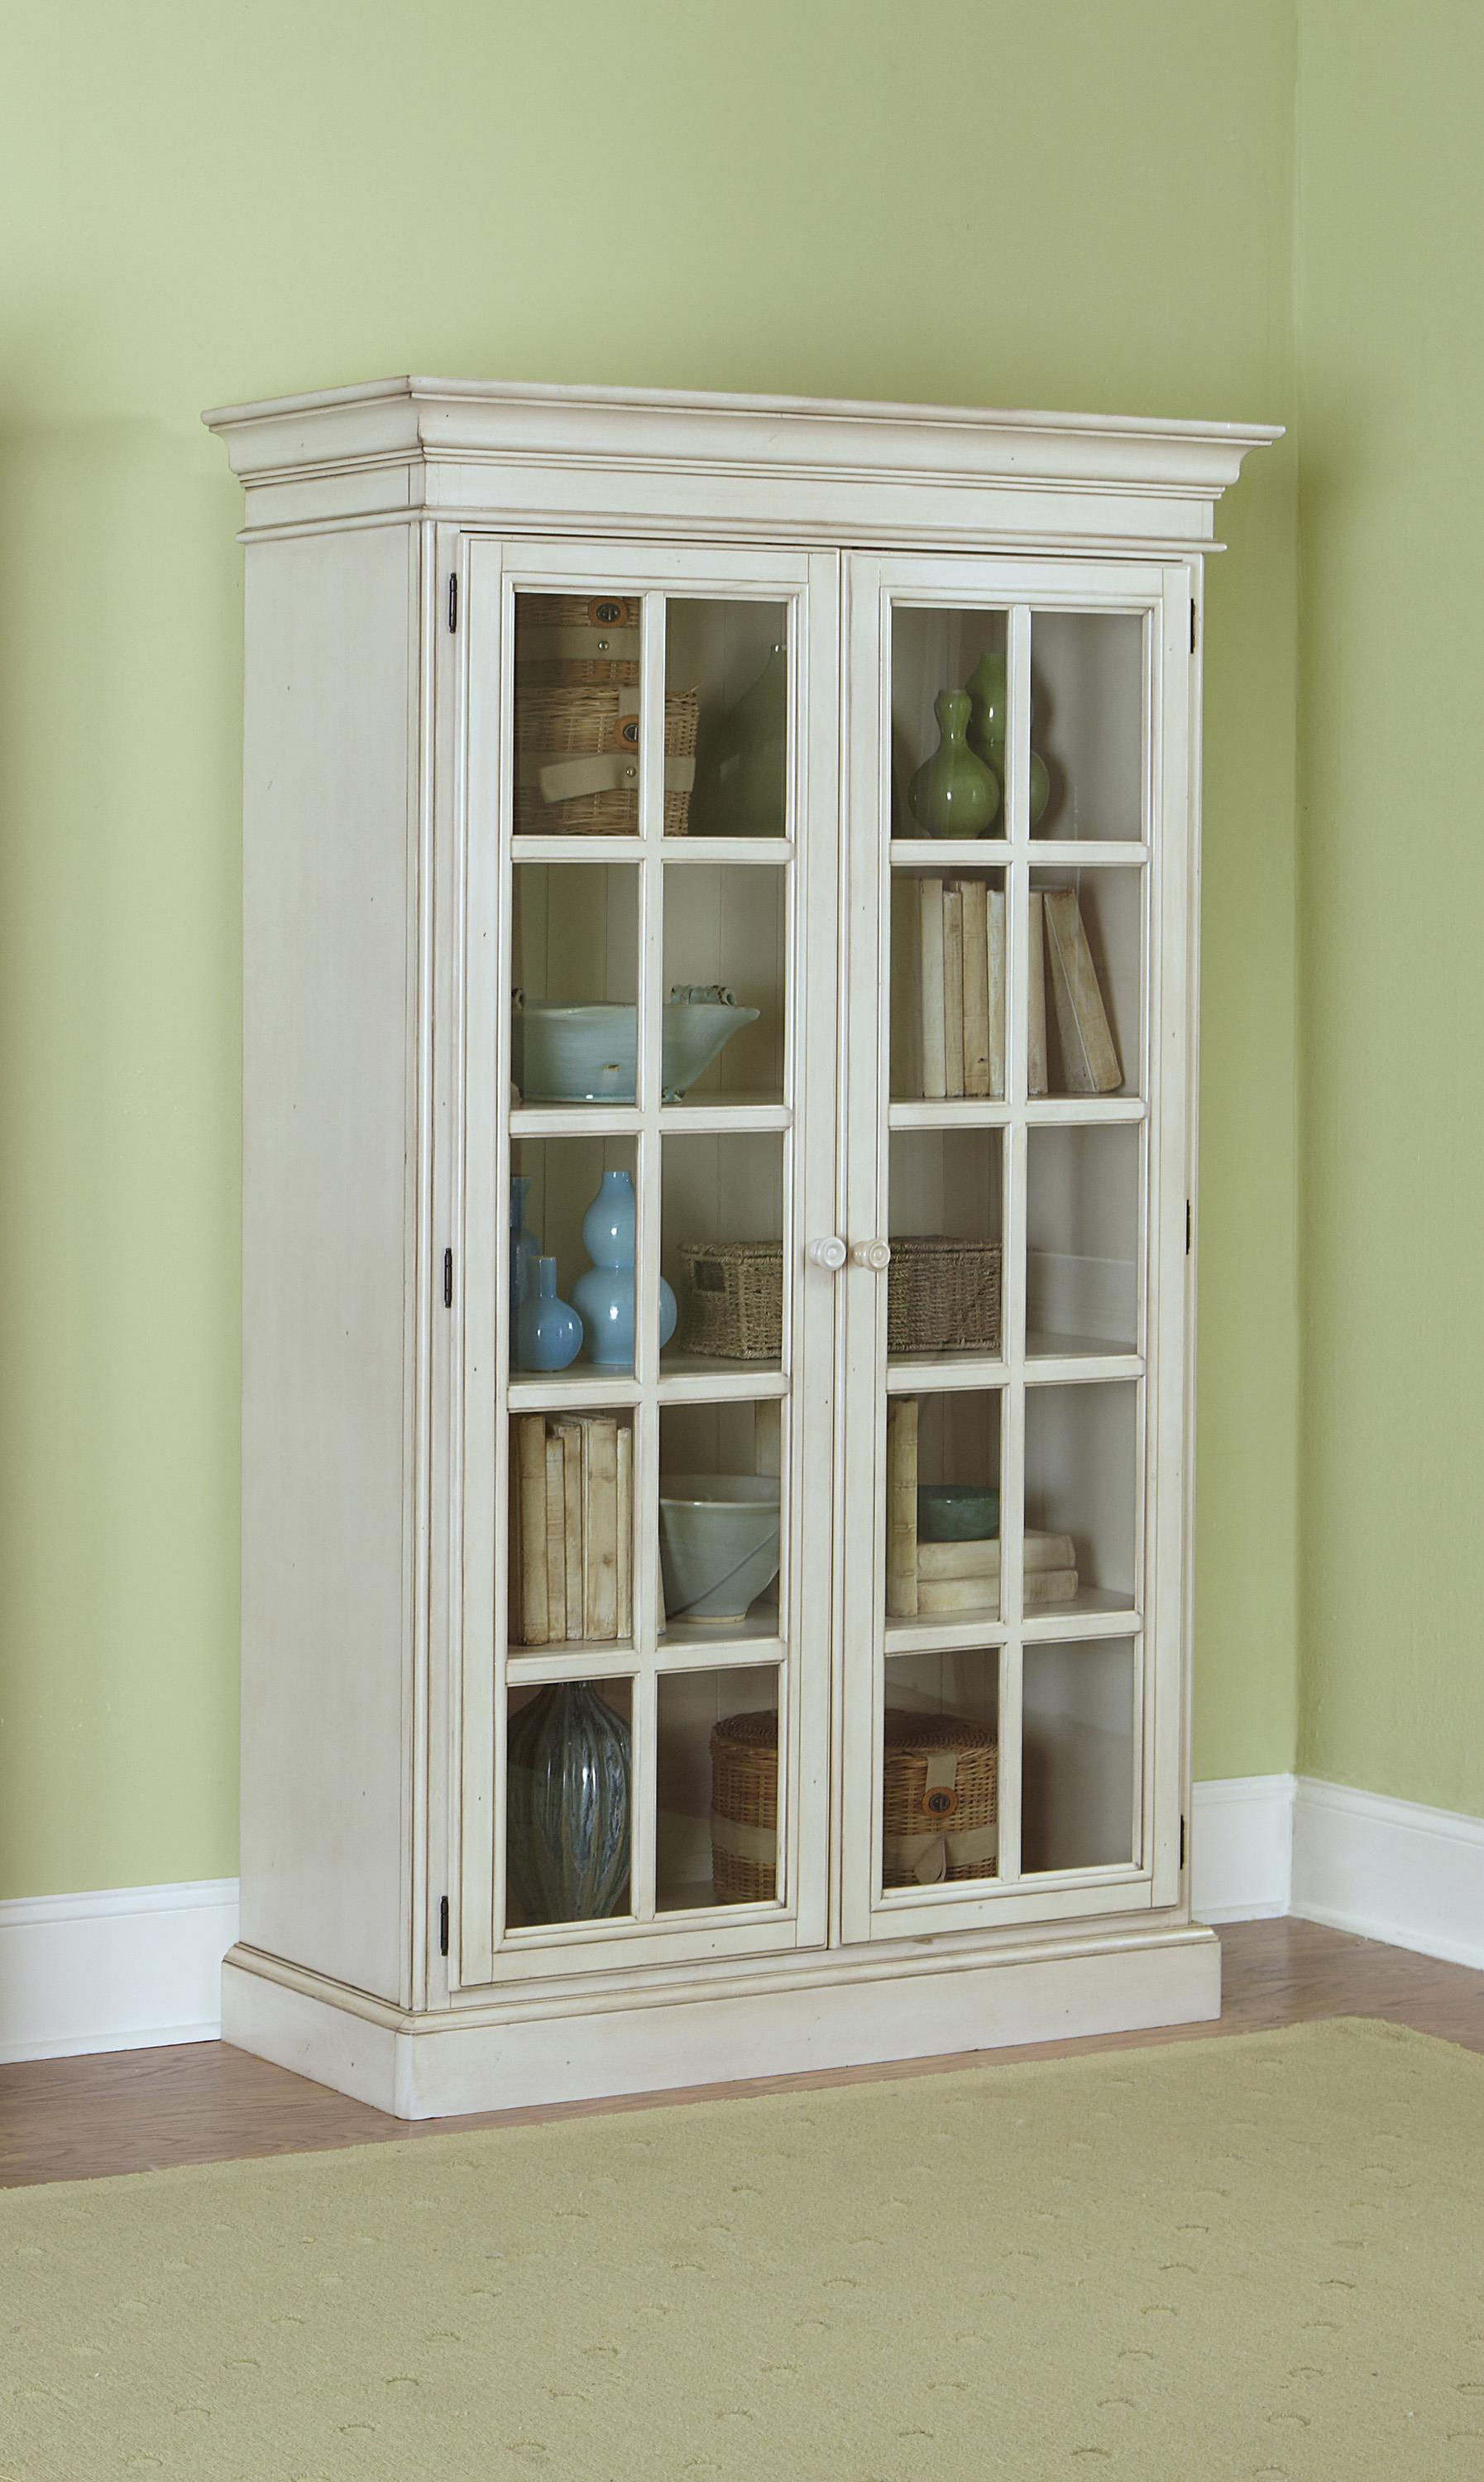 Large Library Cabinet With 2 Glass Doors And Crown Molding By